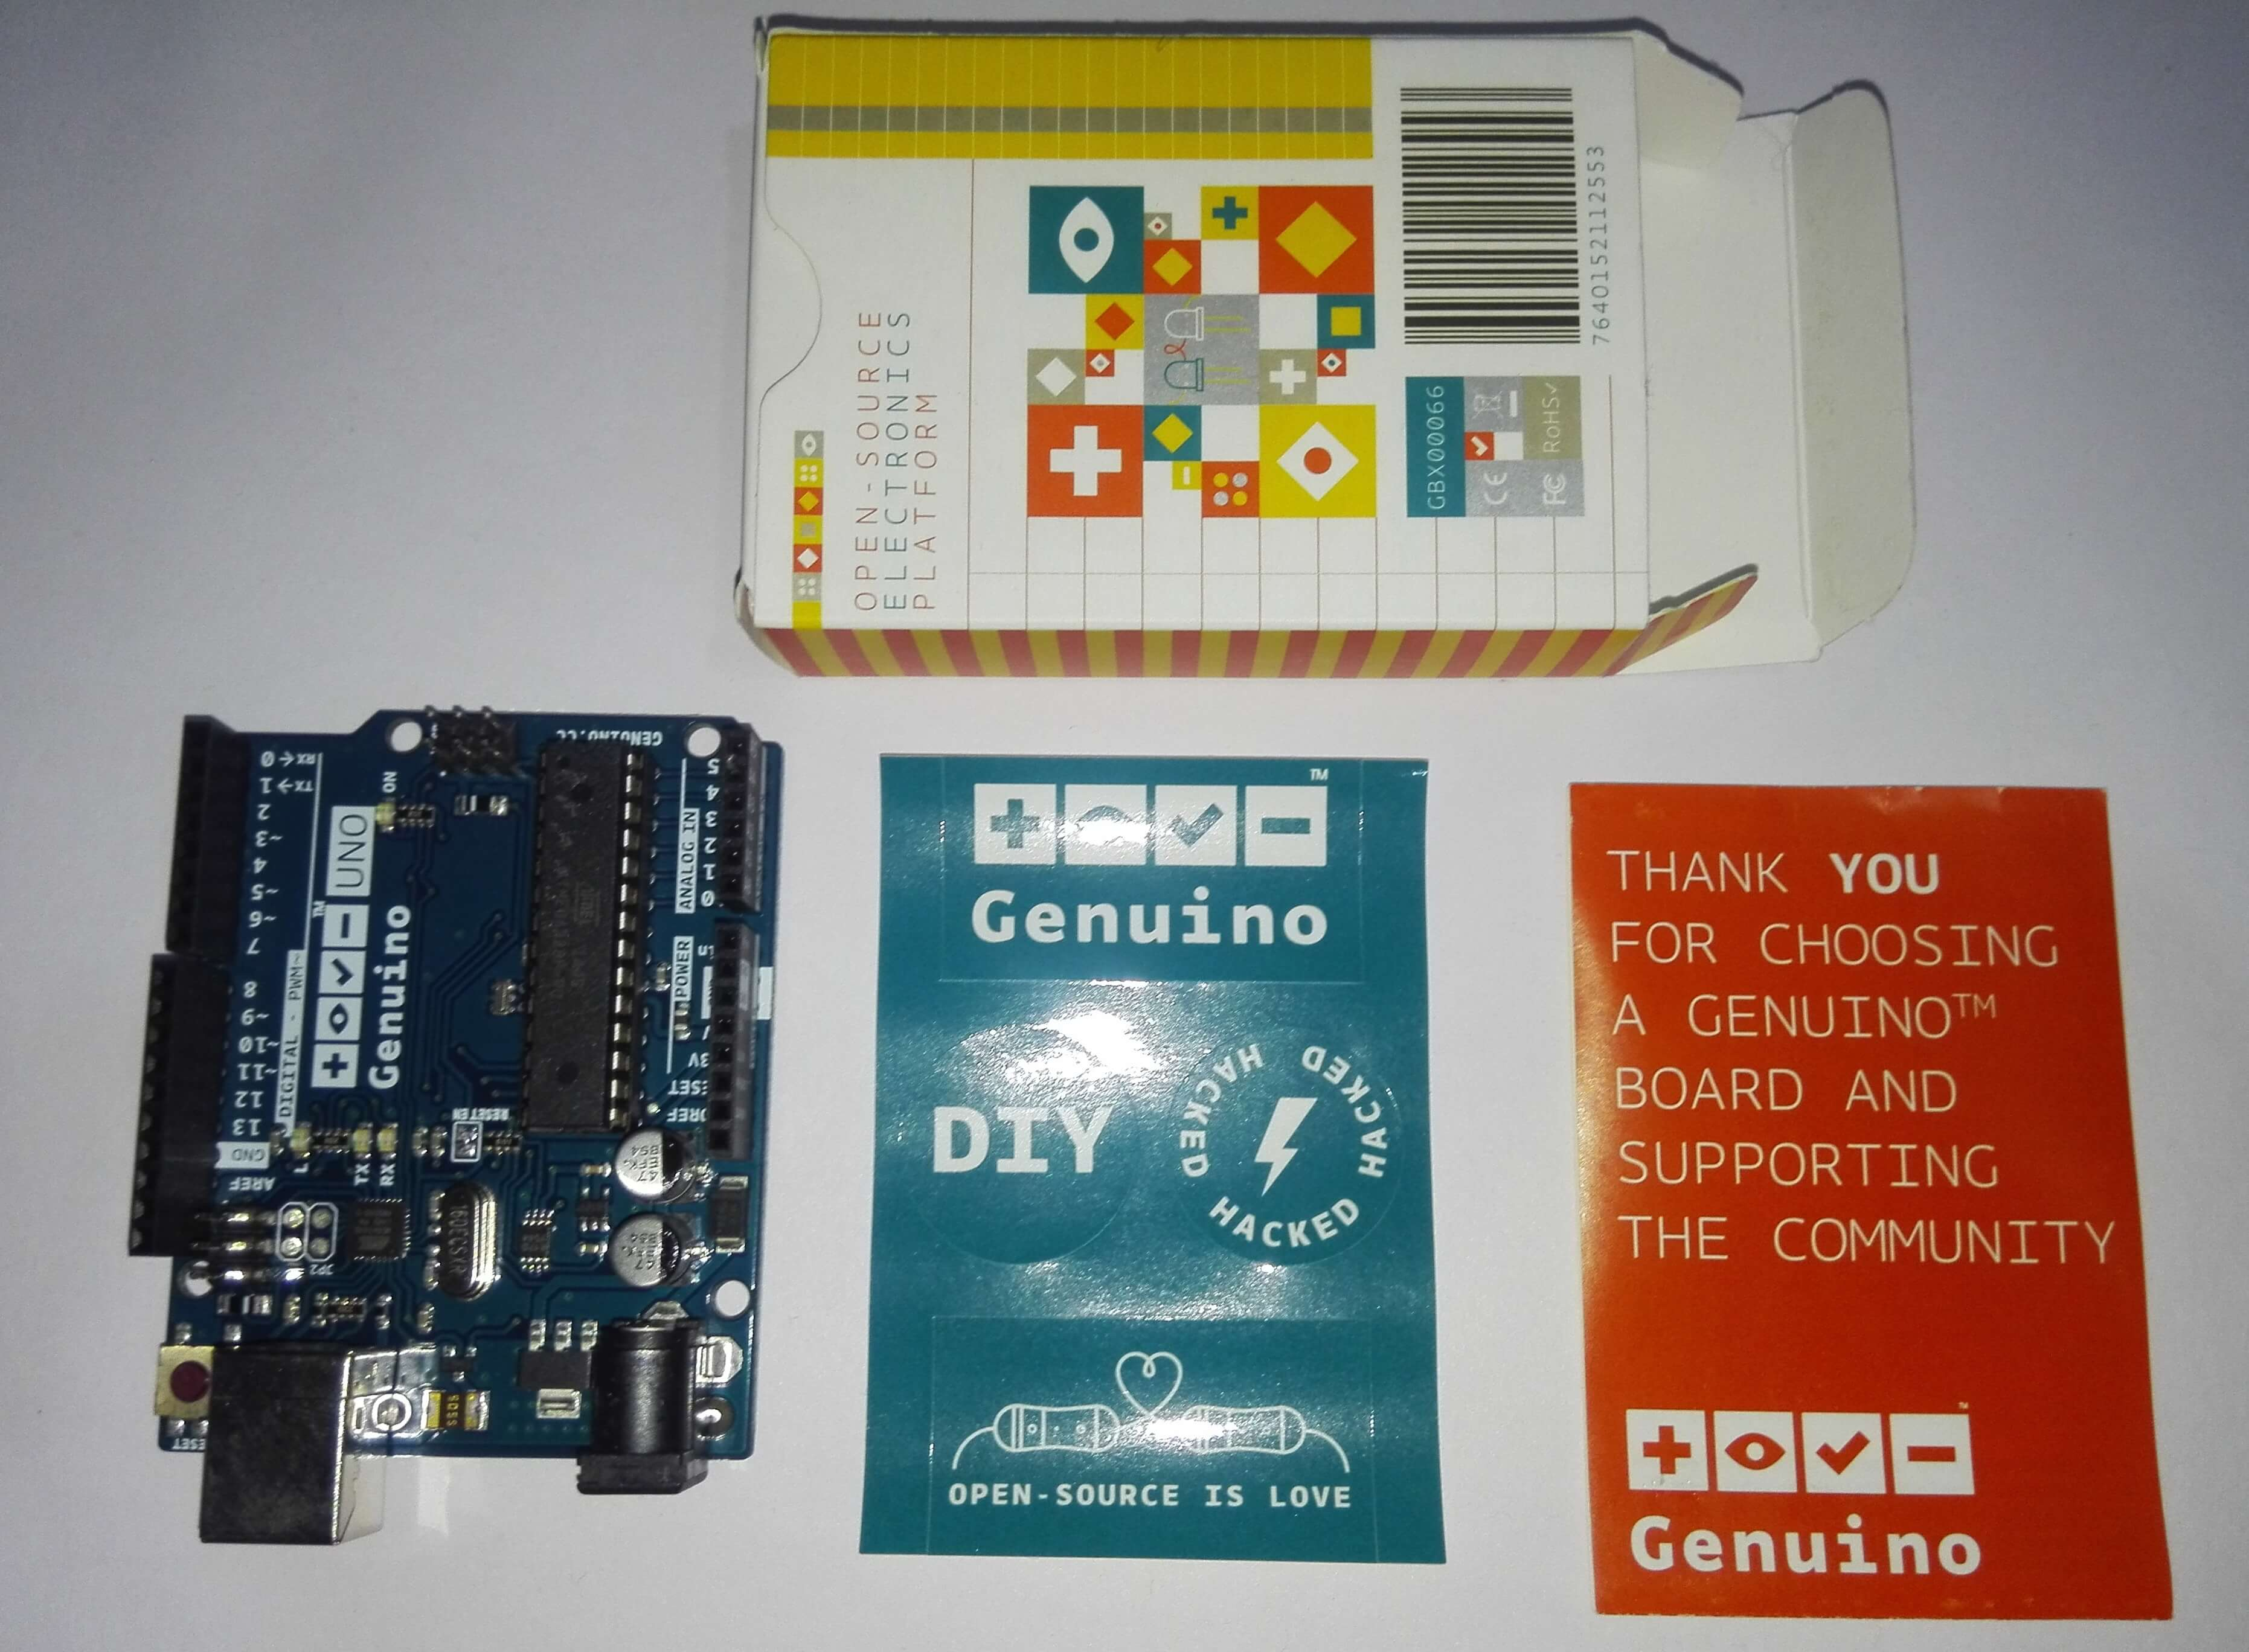 Genuino Uno Rev 3 – A Quick Look